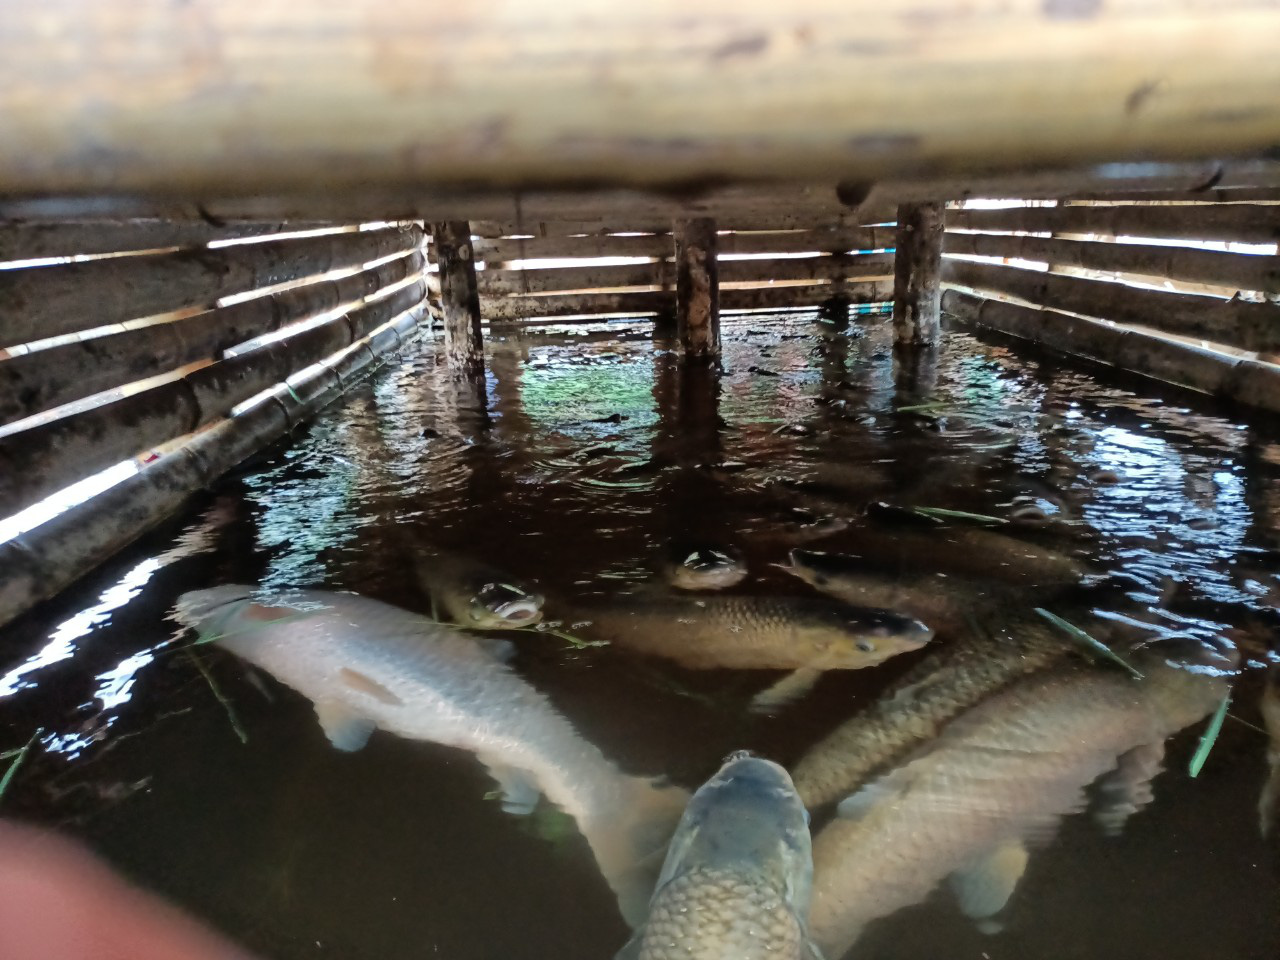 Farm-raised fish die en masse along the Ma River in Cam Thuy District, Thanh Hoa Province, Vietnam, April 14, 2021. Photo: Ha Dong / Tuoi Tre